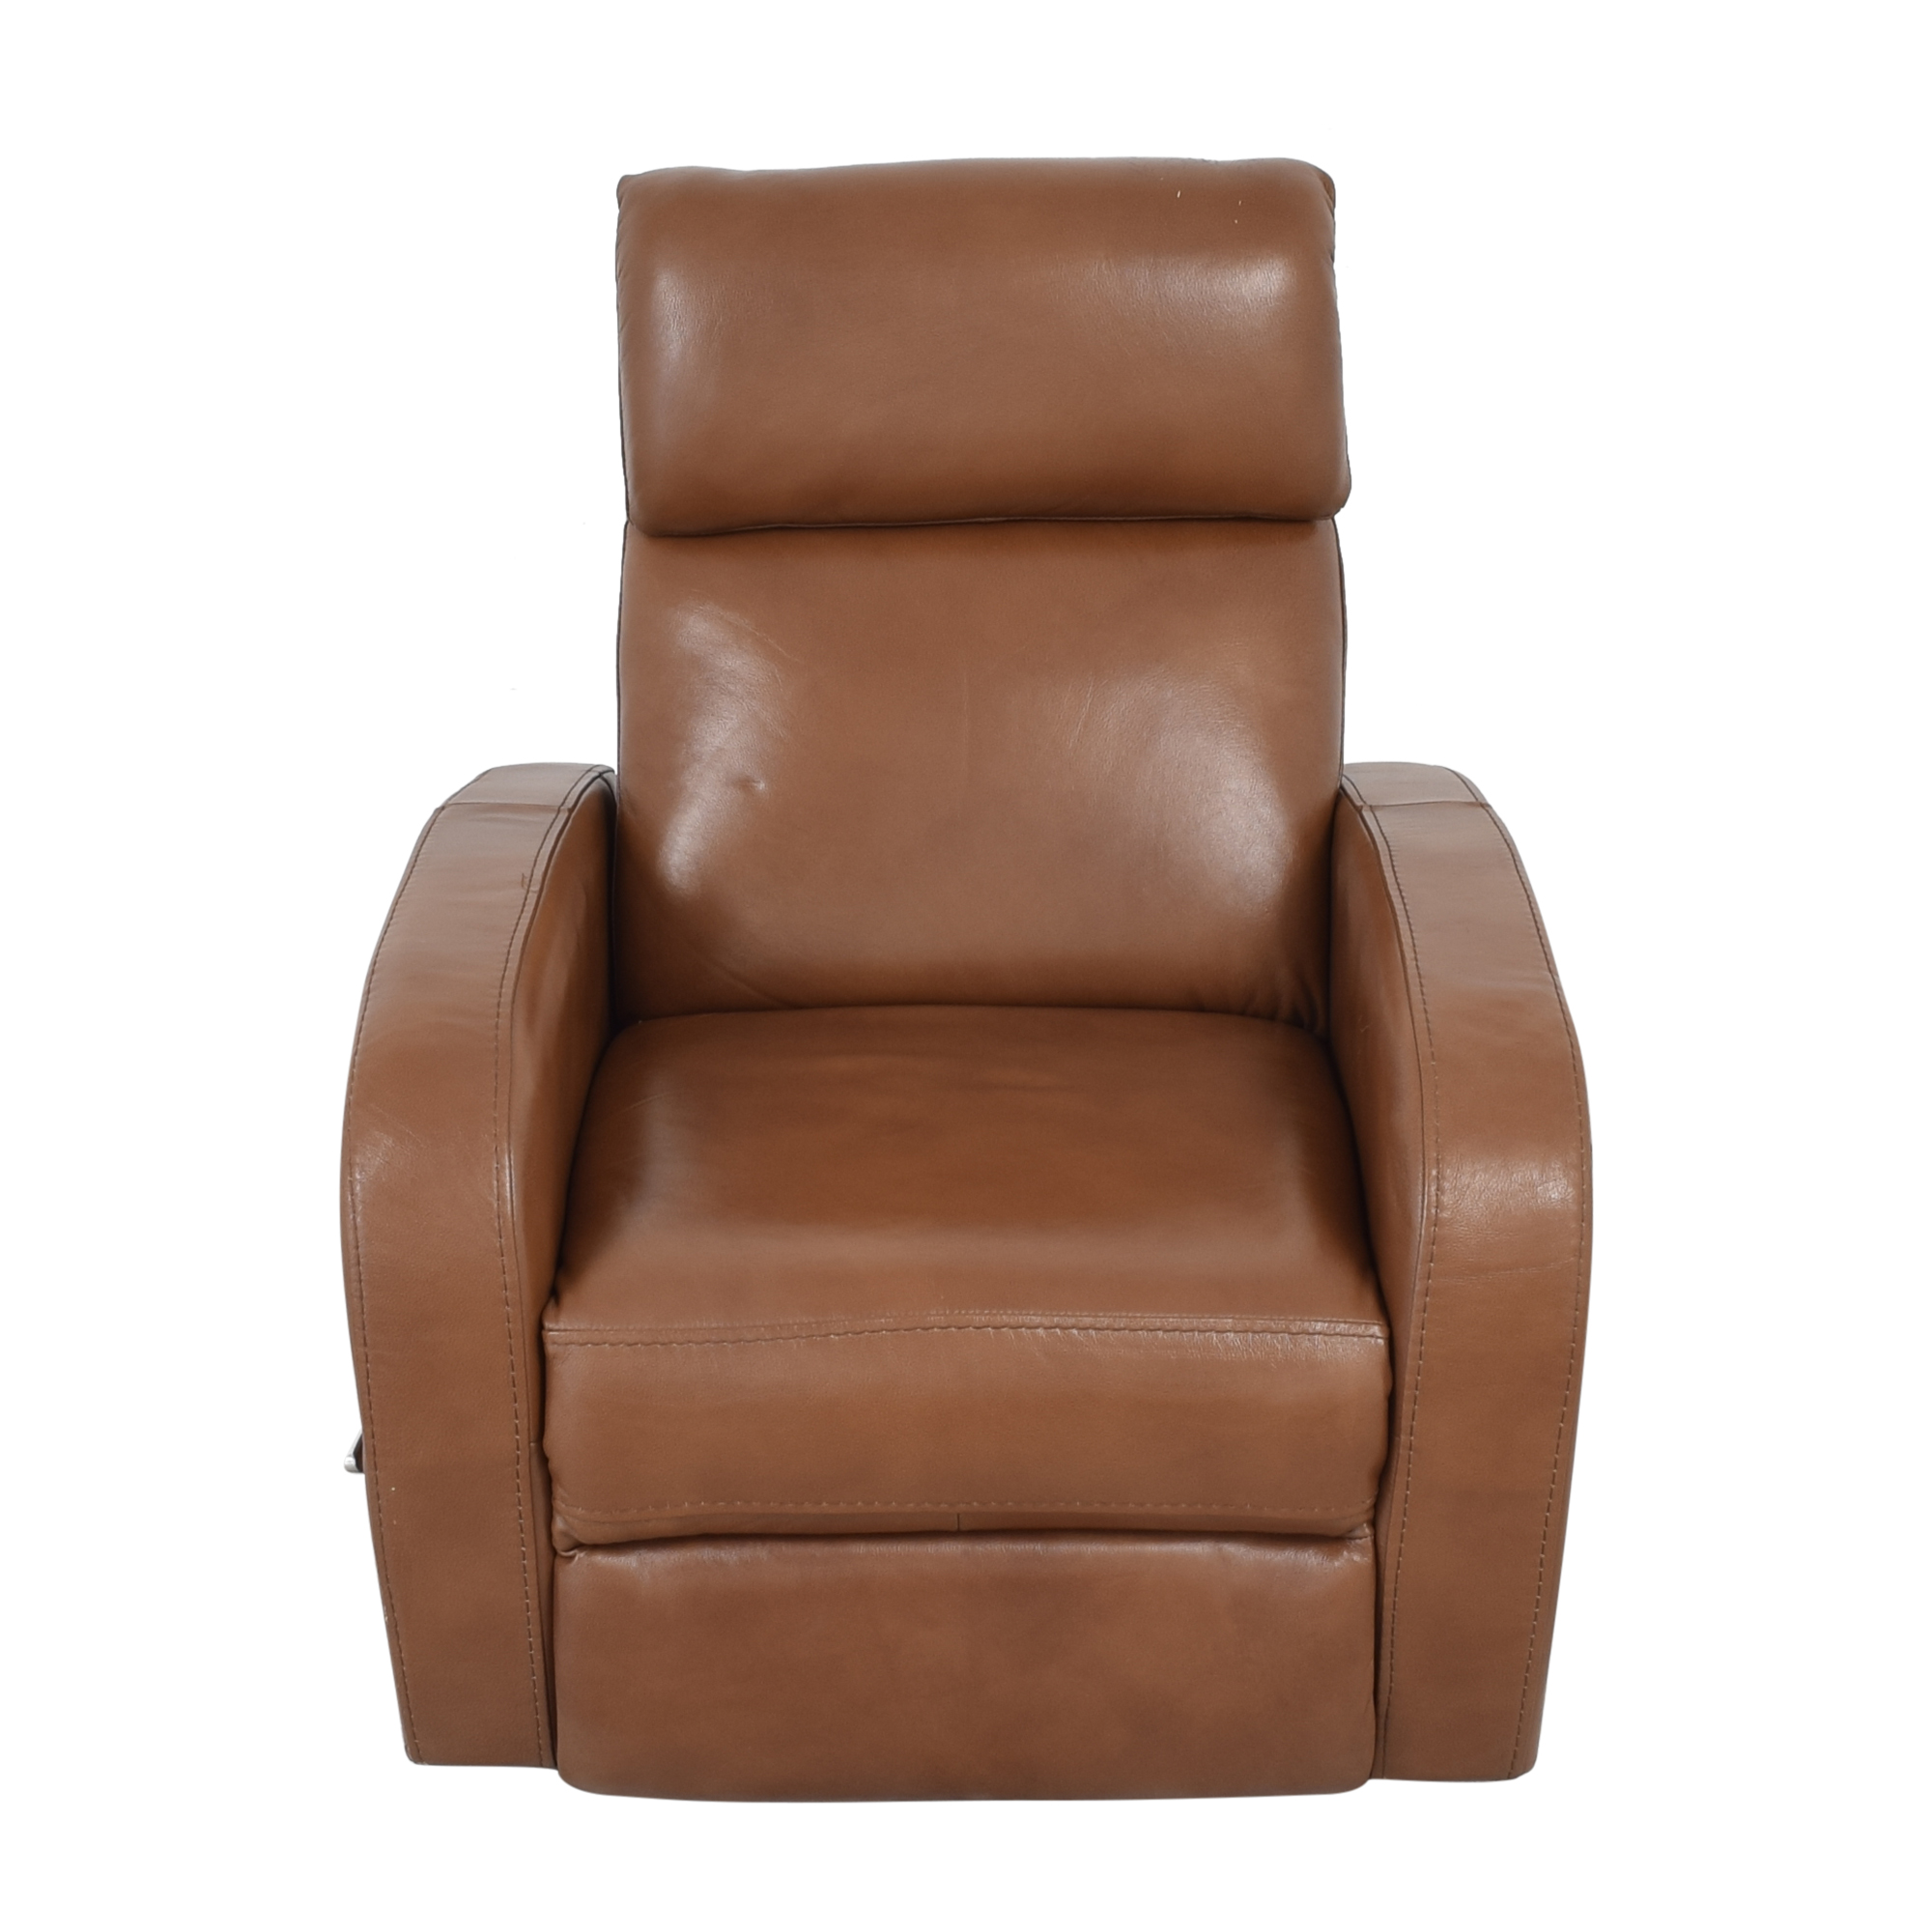 Macy's Manual Swivel Glider Recliner pa